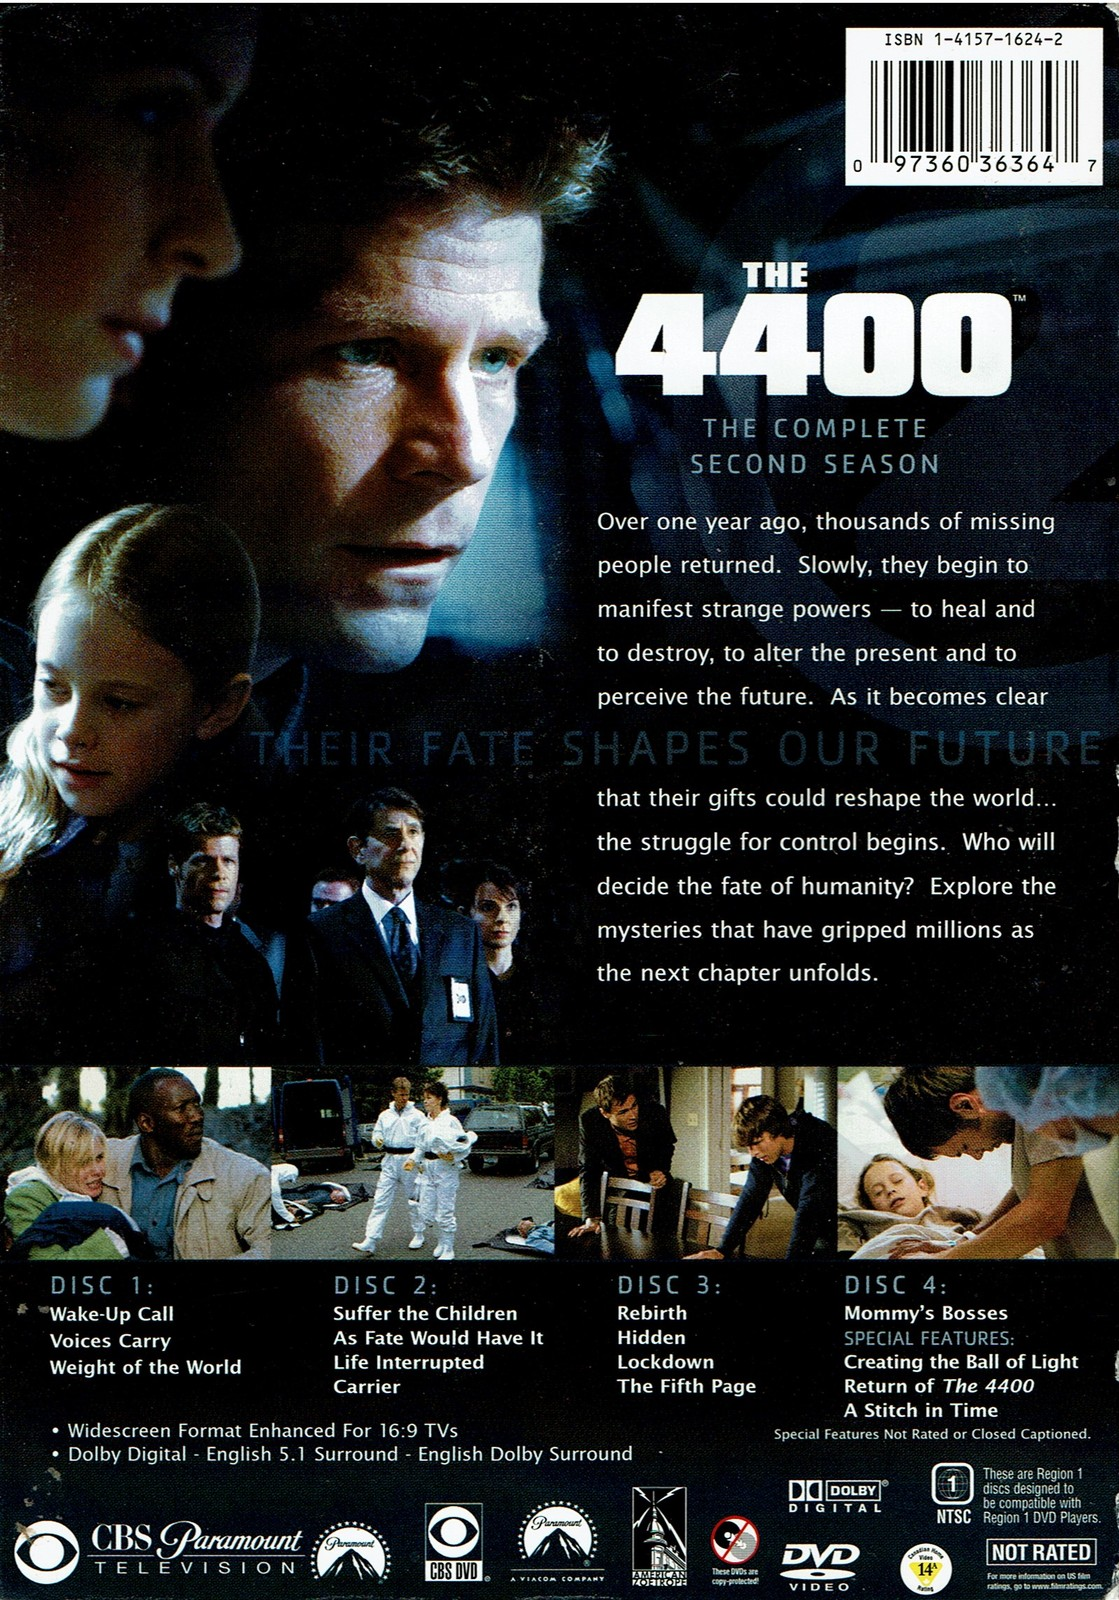 The 4400 - Complete Second Season (DVD, 2006, 4-Disc Set, Widescreen) Like New